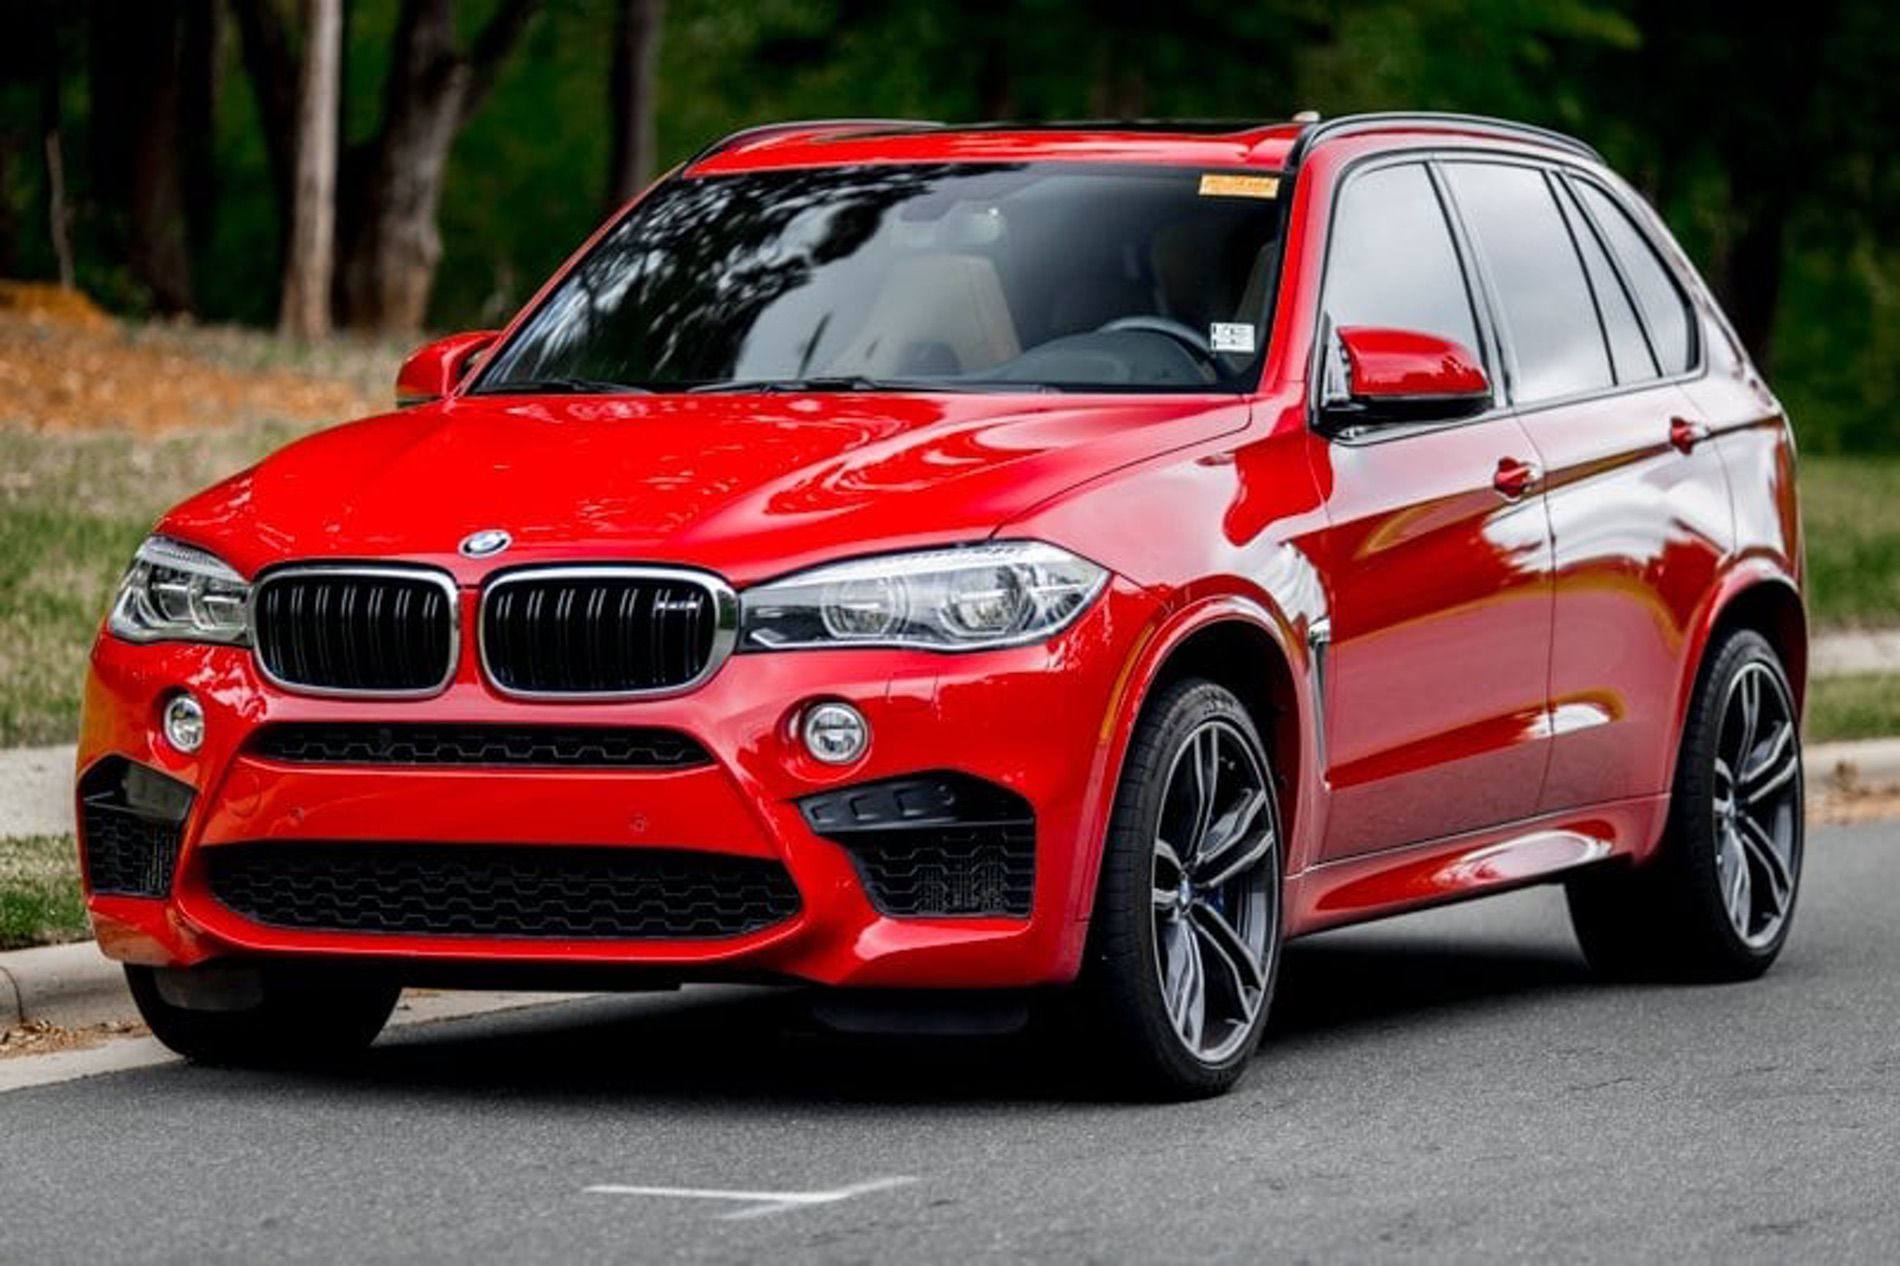 2016 Bmw X5m Melbourne Red 04 830x553